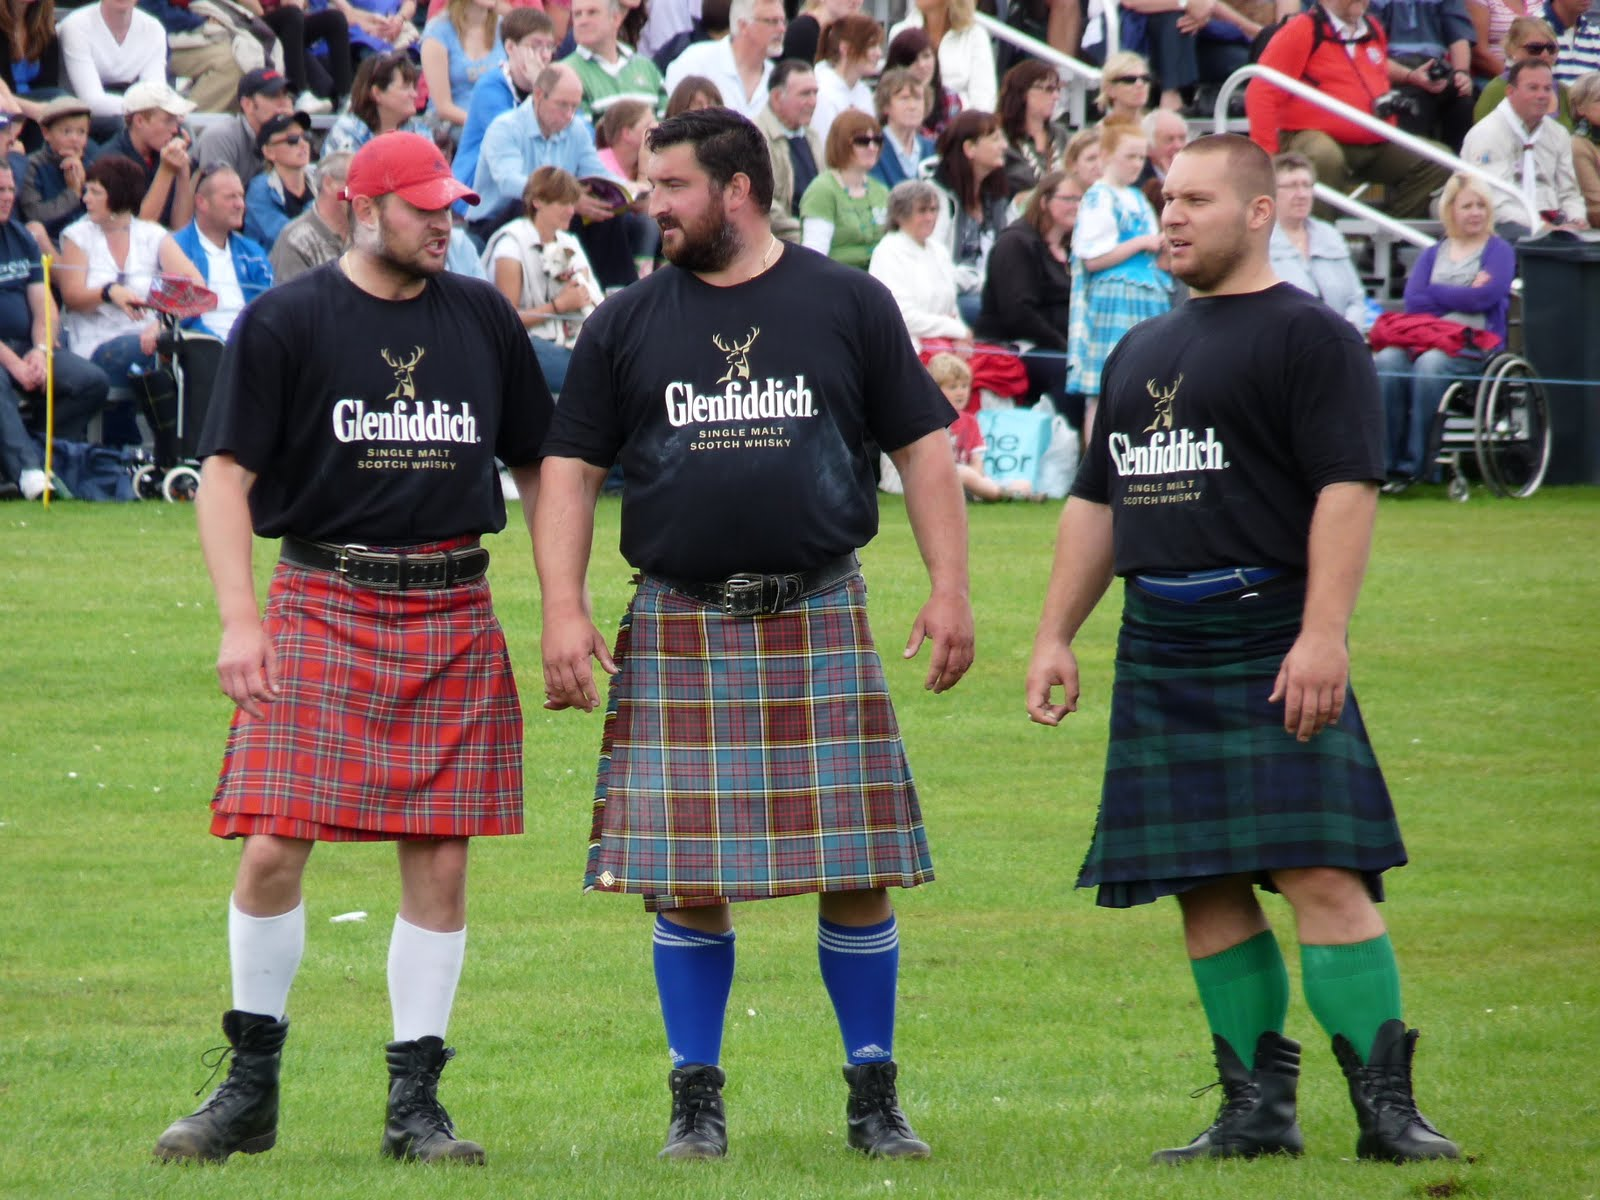 Returned scot unspeakably scots thing big hairy scotsmen theres nothing quite like a big hairy scotsman to keep us amused a friend jetted in from the continent never having visited scotland before solutioingenieria Choice Image